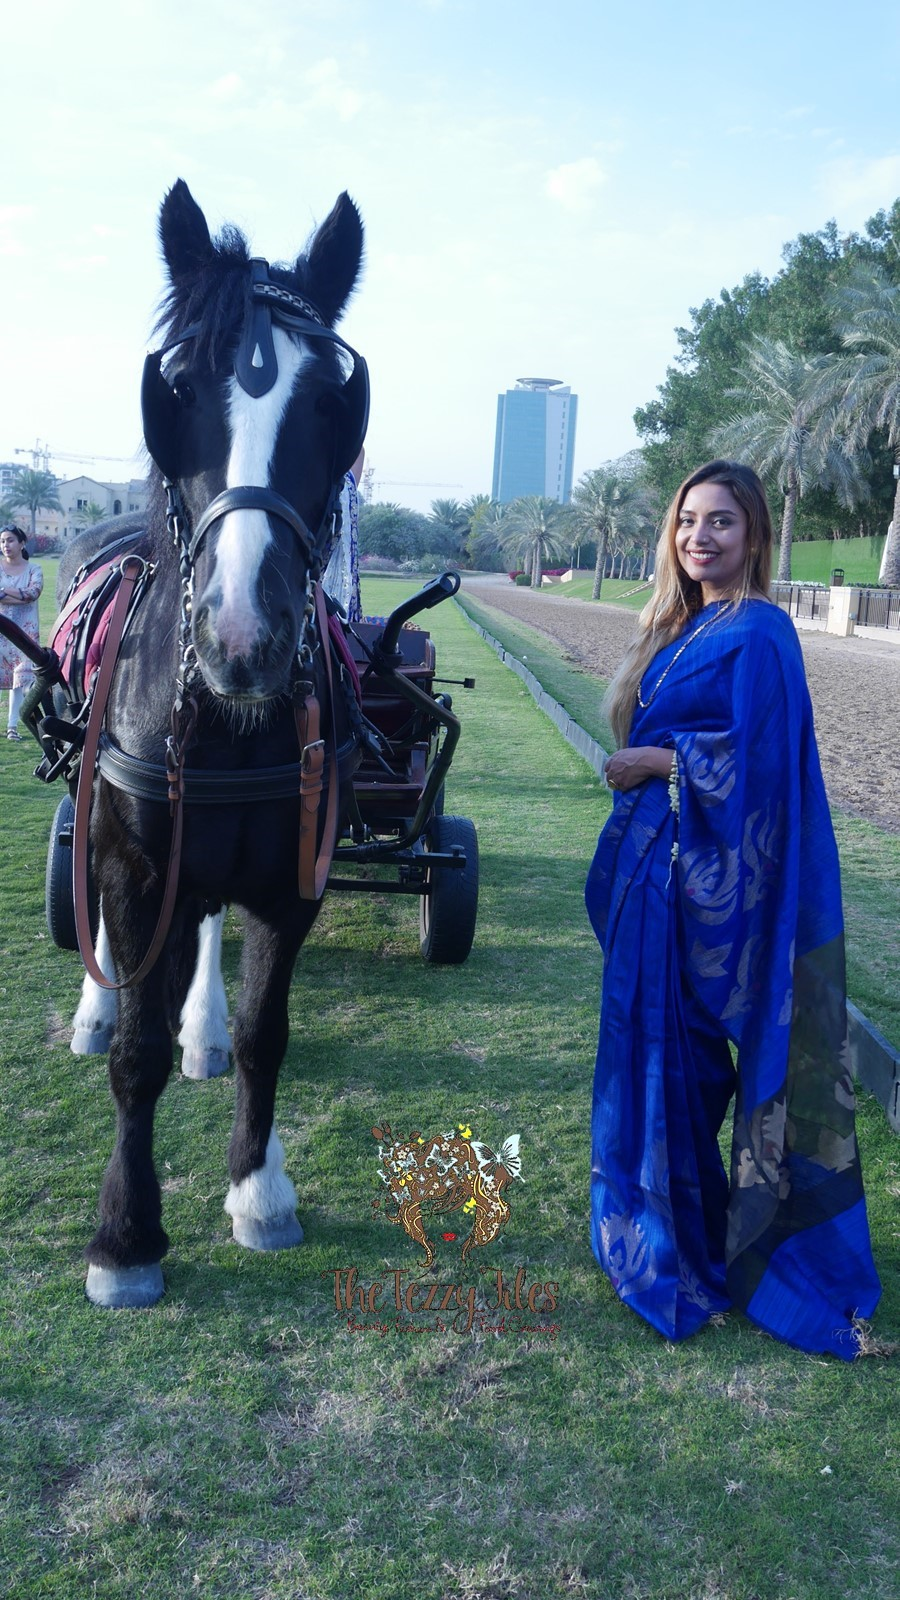 dubai-polo-club-equestrian-club-dubai-weddings-venue-horses-baraati-bloggers-event-sari-saree-indian-blog-dubai-india-uae-wedding-bloggers-lifestyle-blog-uae-1